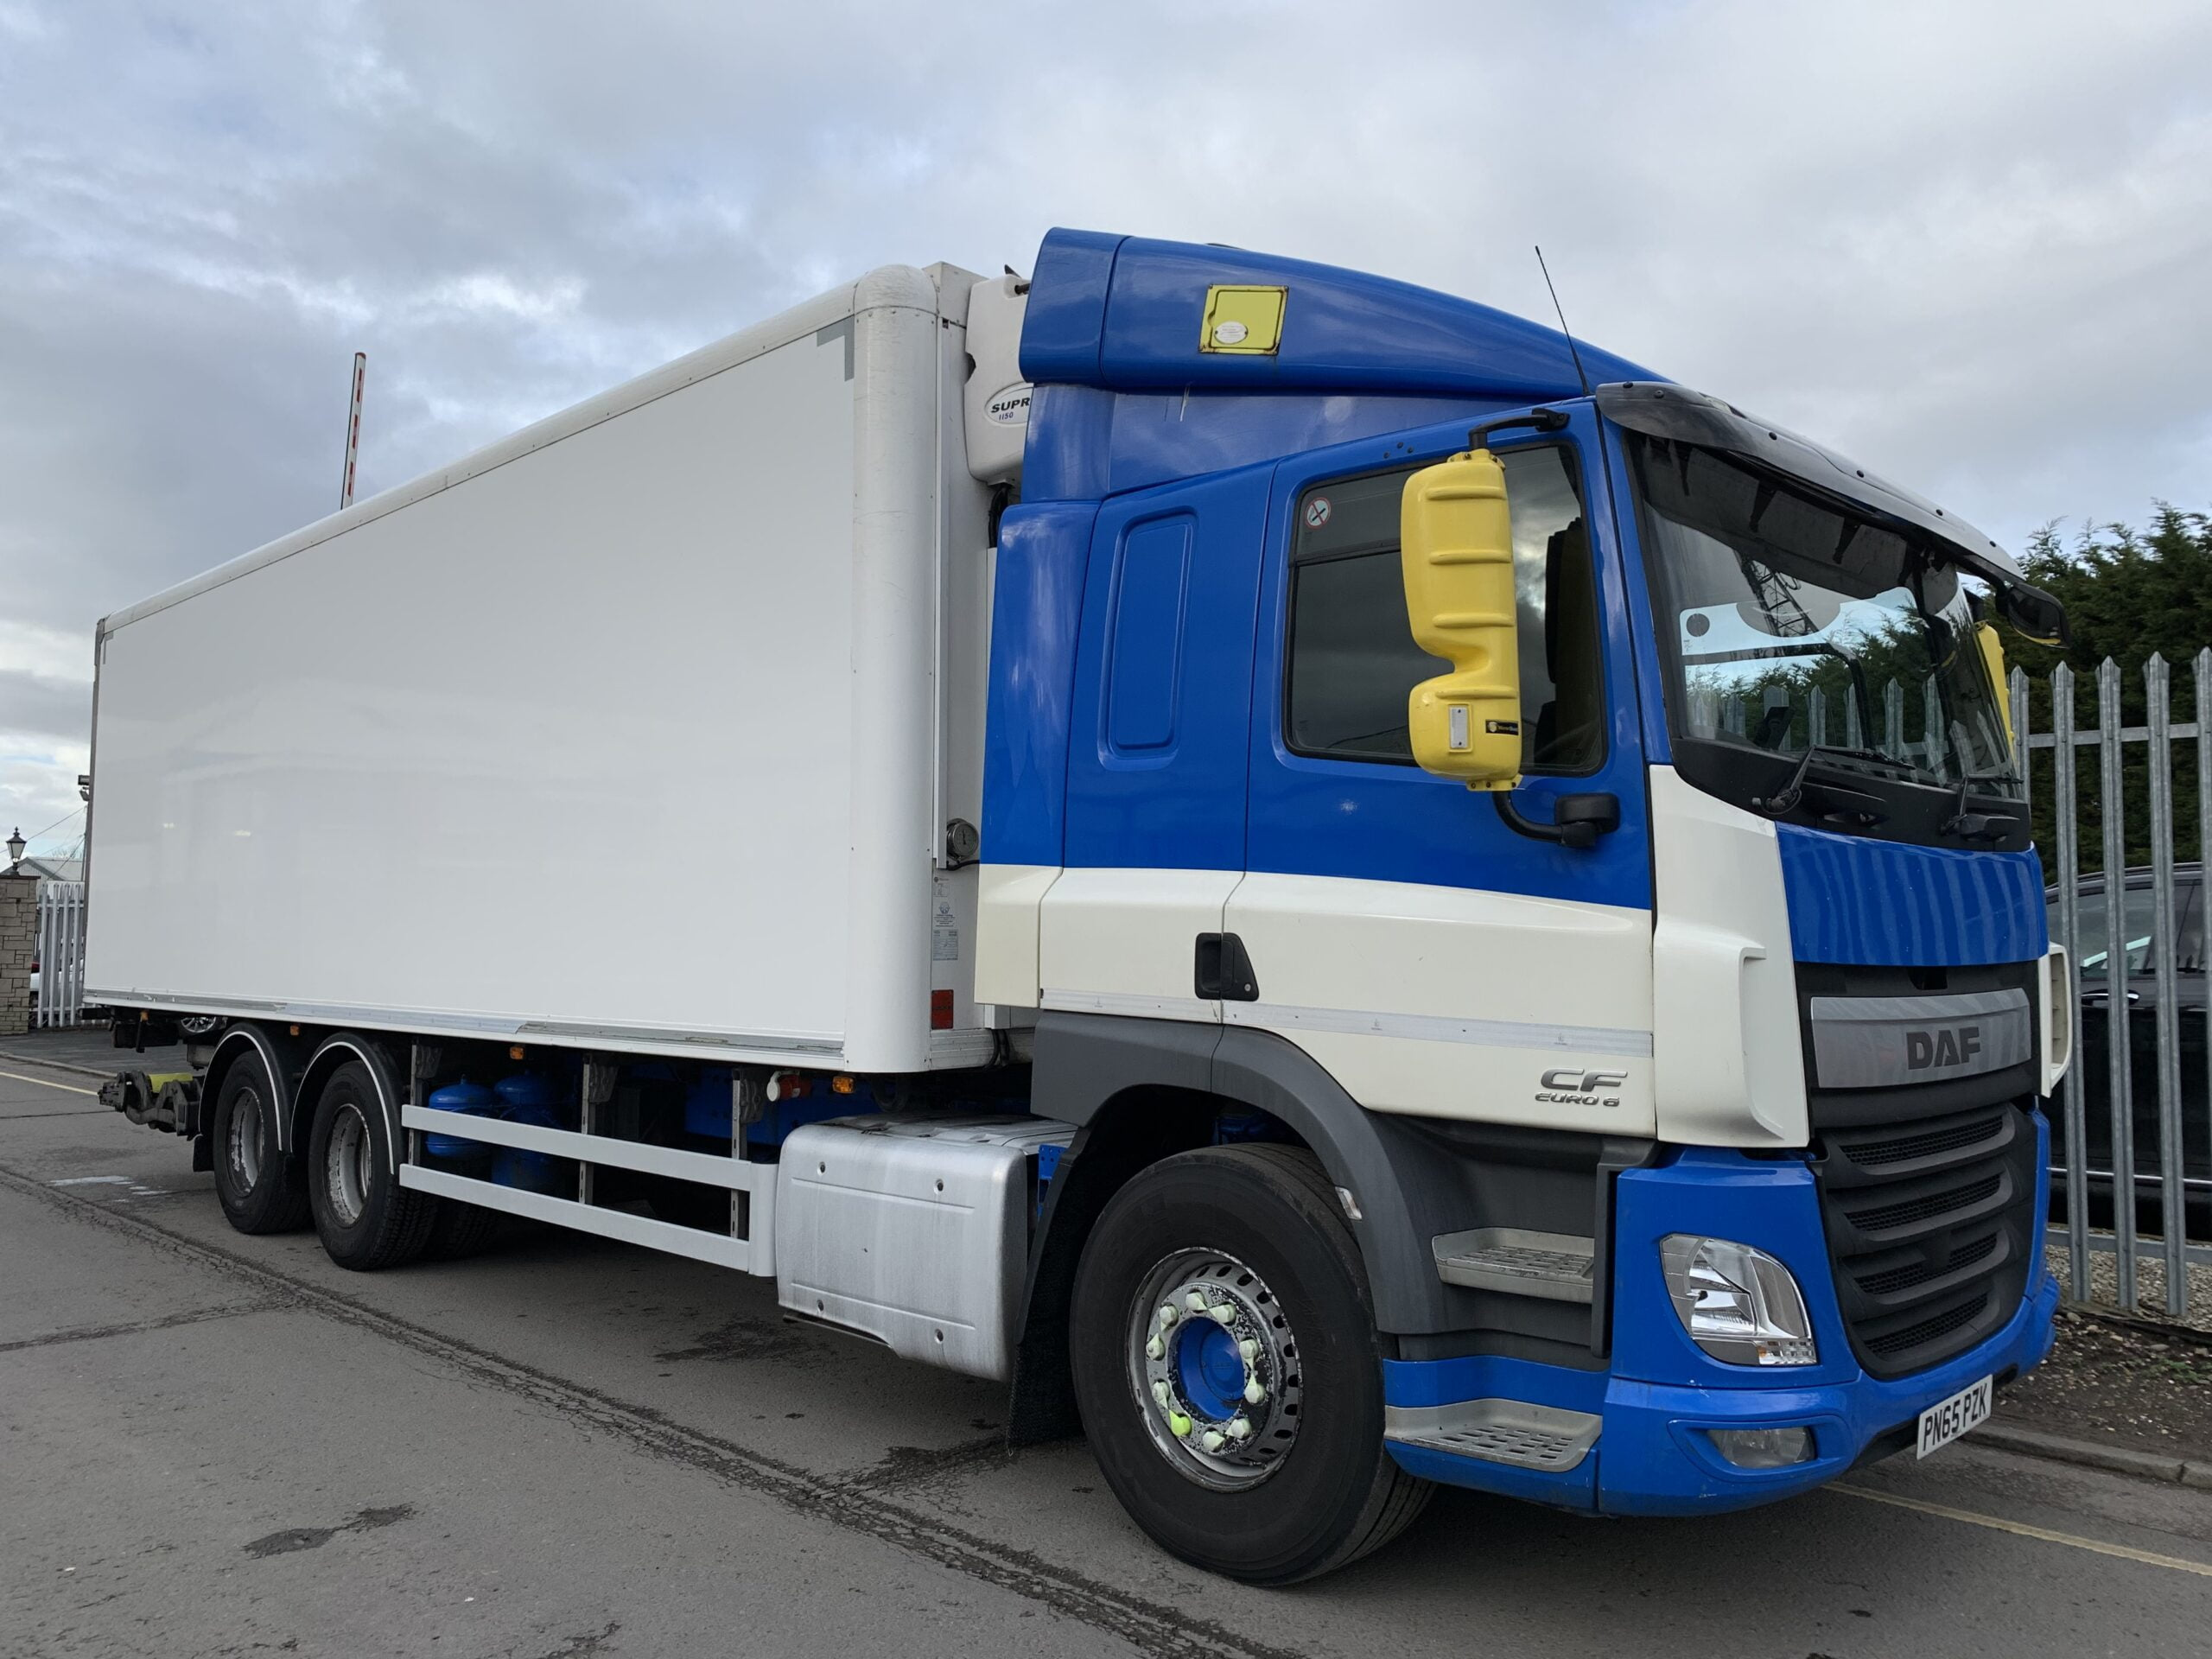 2015 (65) DAF CF Fridge Tailift, 26 Tonne, 330bhp, Euro 6, Dhollandia Tuckunder Tailift (1500kg Capacity), Carrier 1150 Supra Fridge Engine, Automatic Gearbox, Gray & Adams Fridge Body, Single Sleeper Cab, Steering Wheel Controls, Barn Doors, 2 x Load Lock Rails, Low Mileage, Choice & Warranty Available.